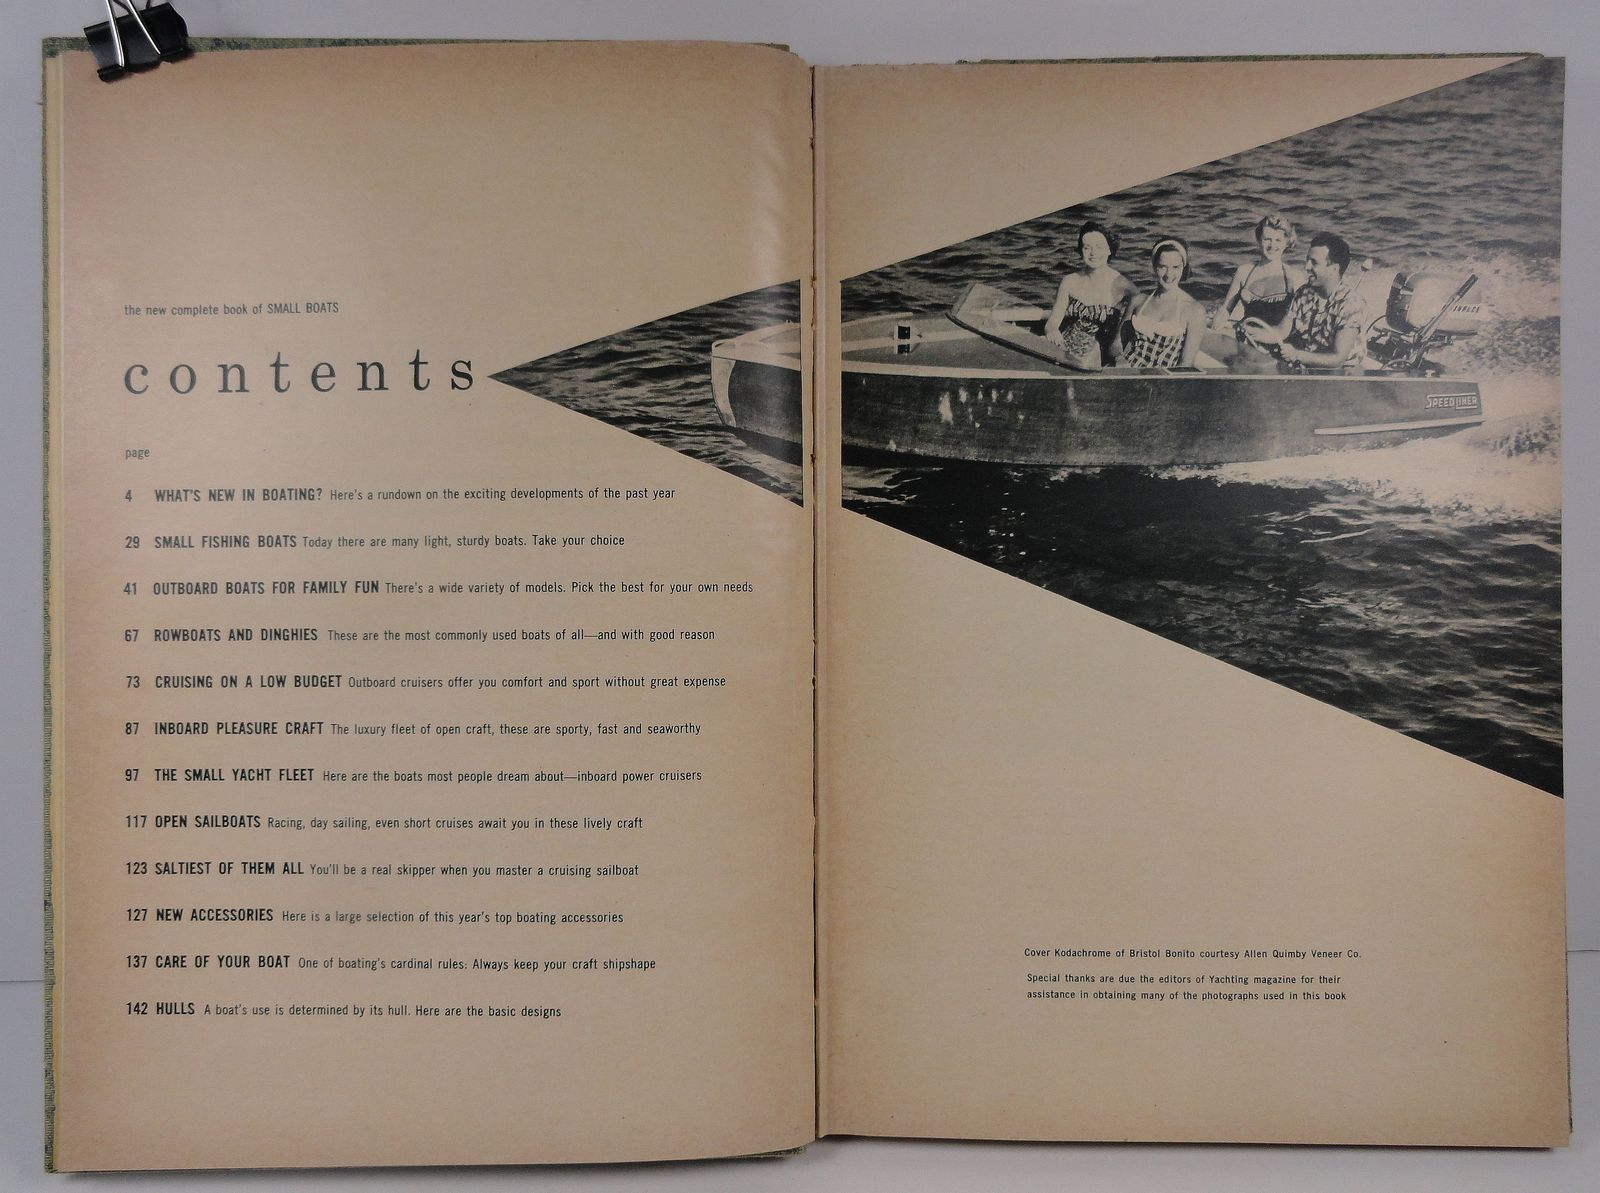 The New Complete Book of Small Boats by Lloyd Mallan 1955